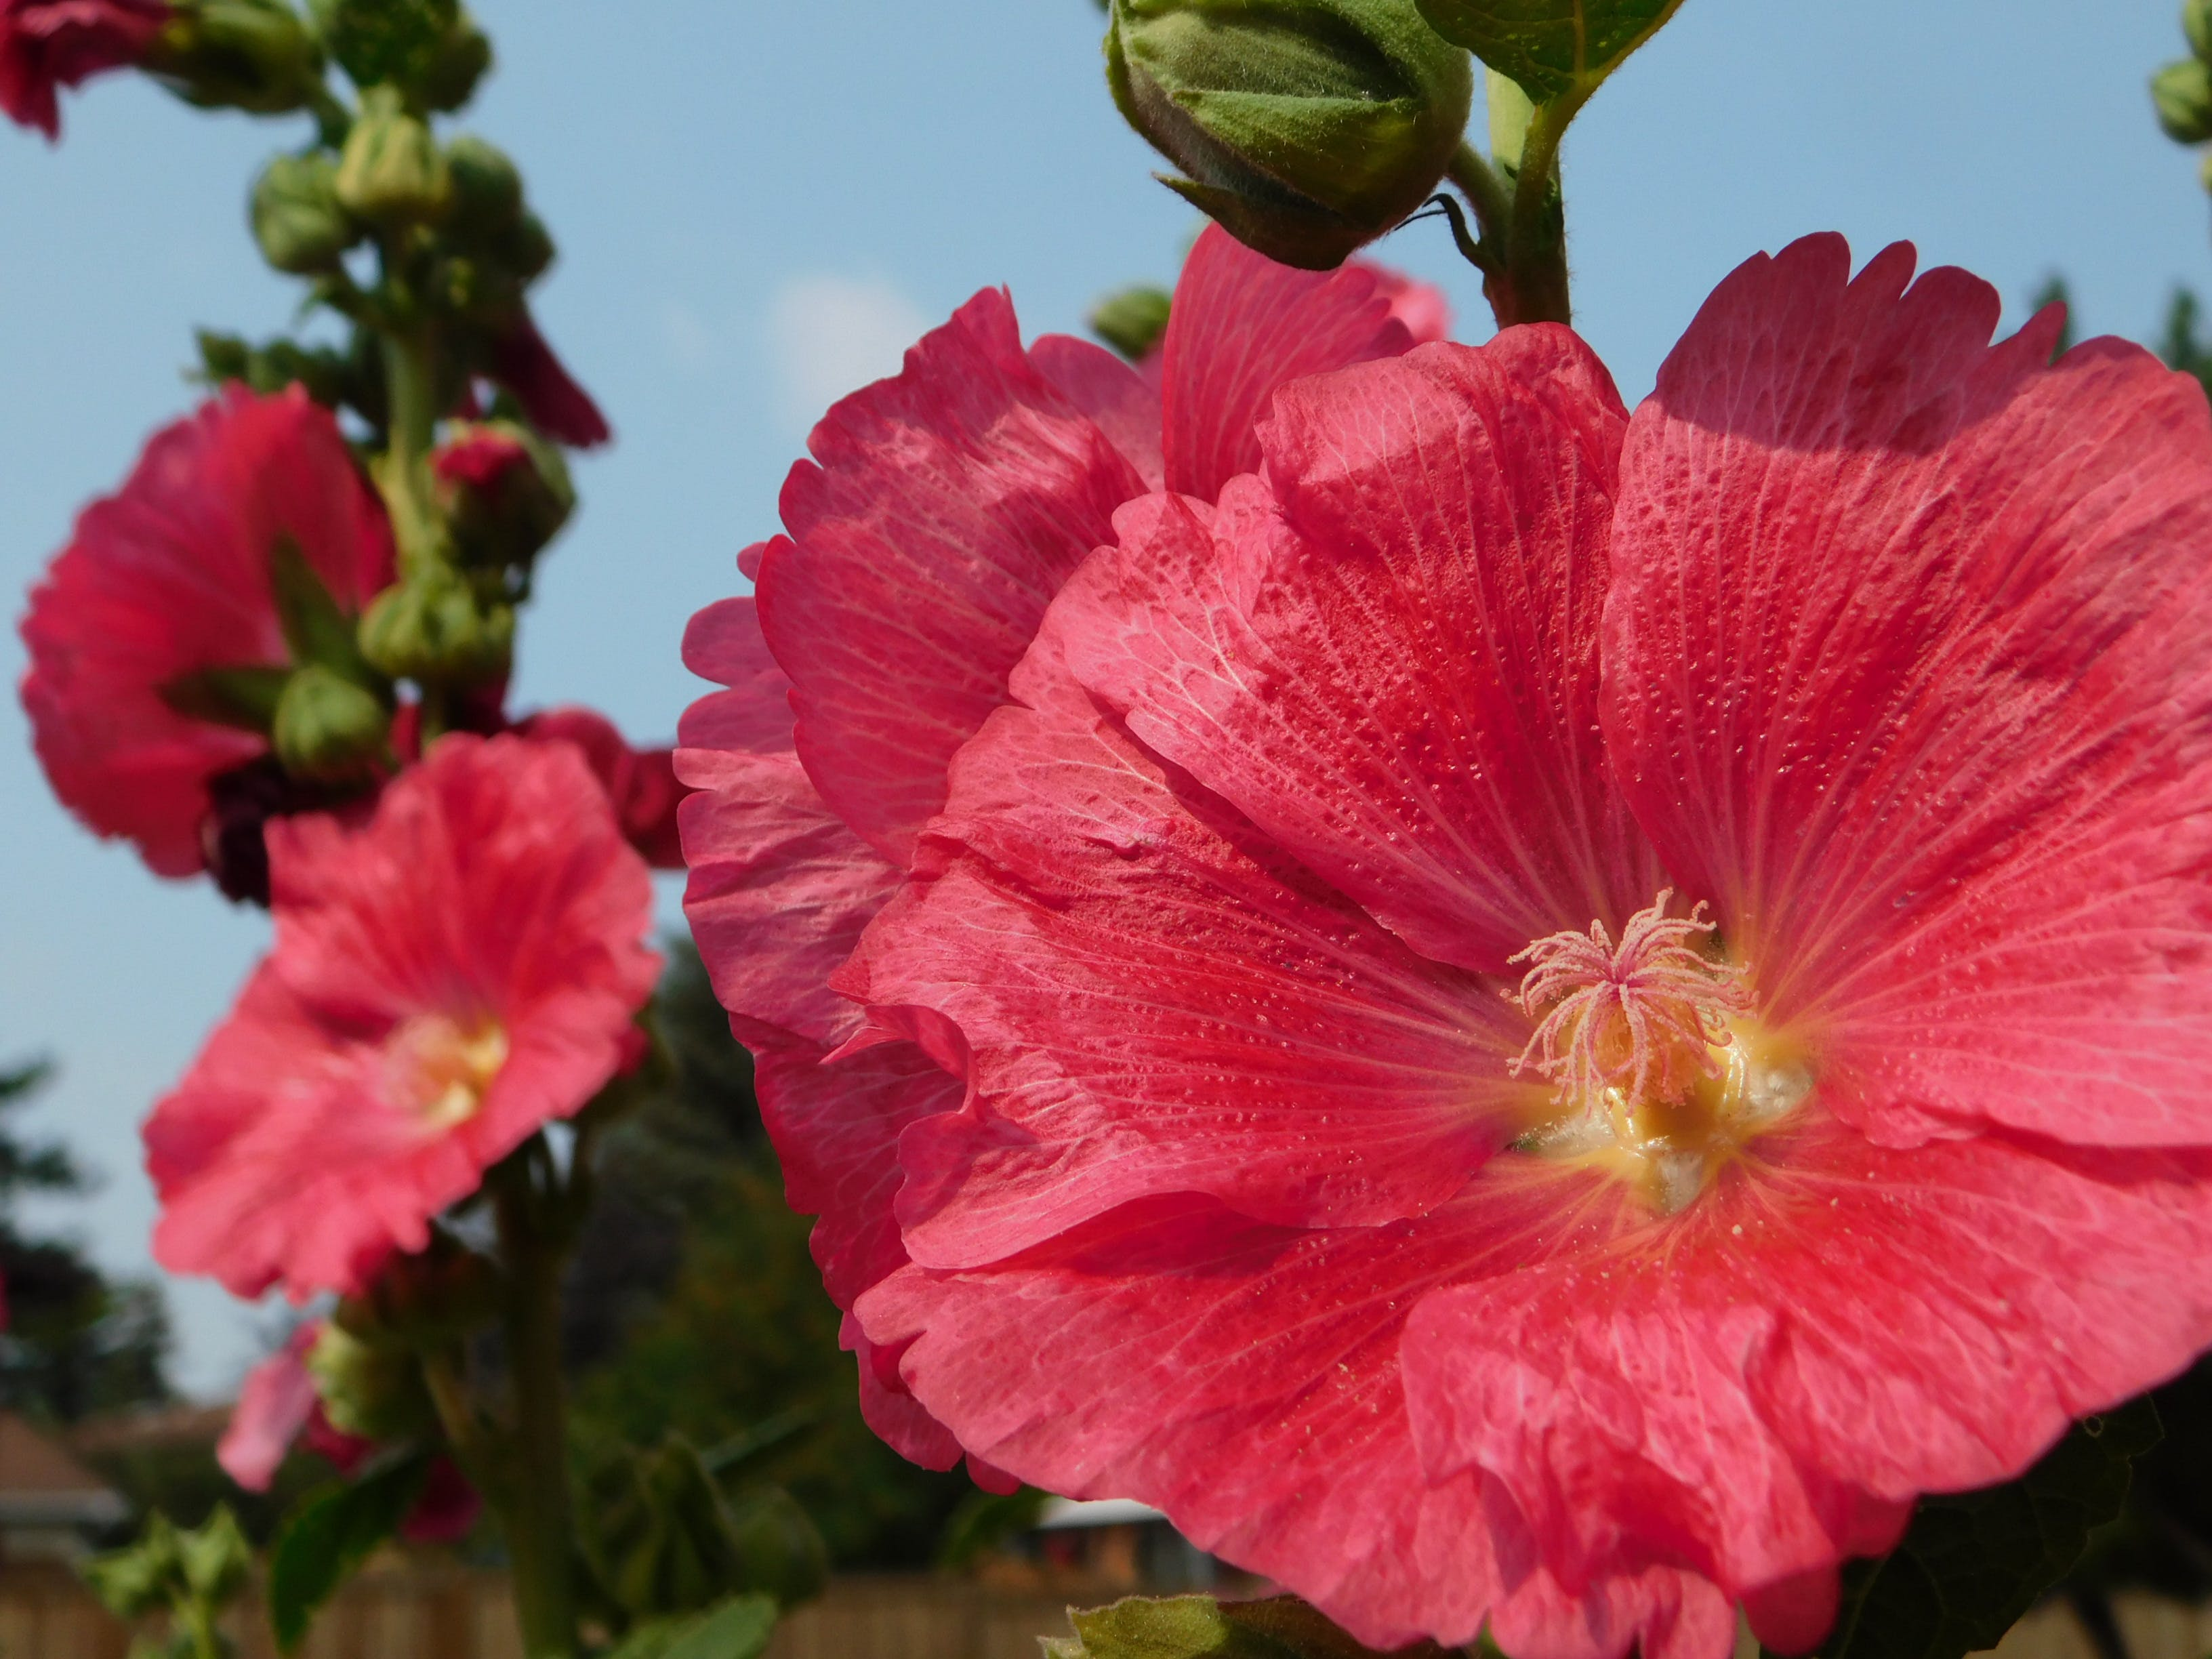 Free stock photo of Hollyhocks grow over 5 Ft. tall